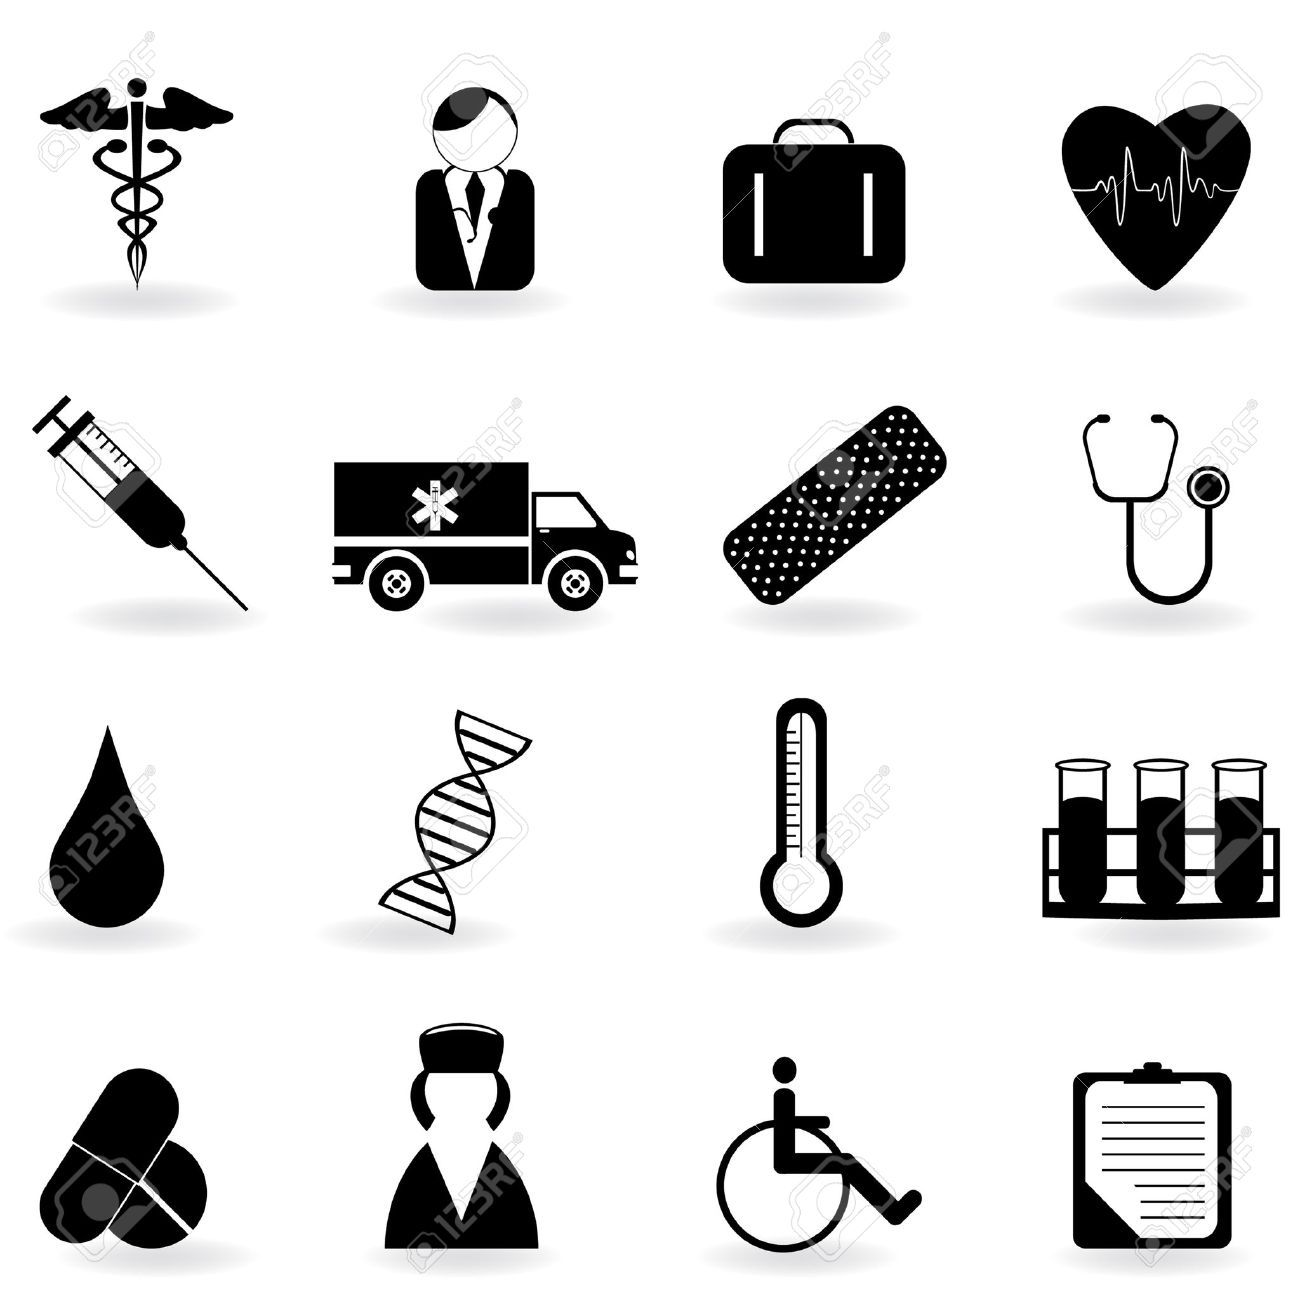 Stock Vector Health icon, Medical, Medical health care